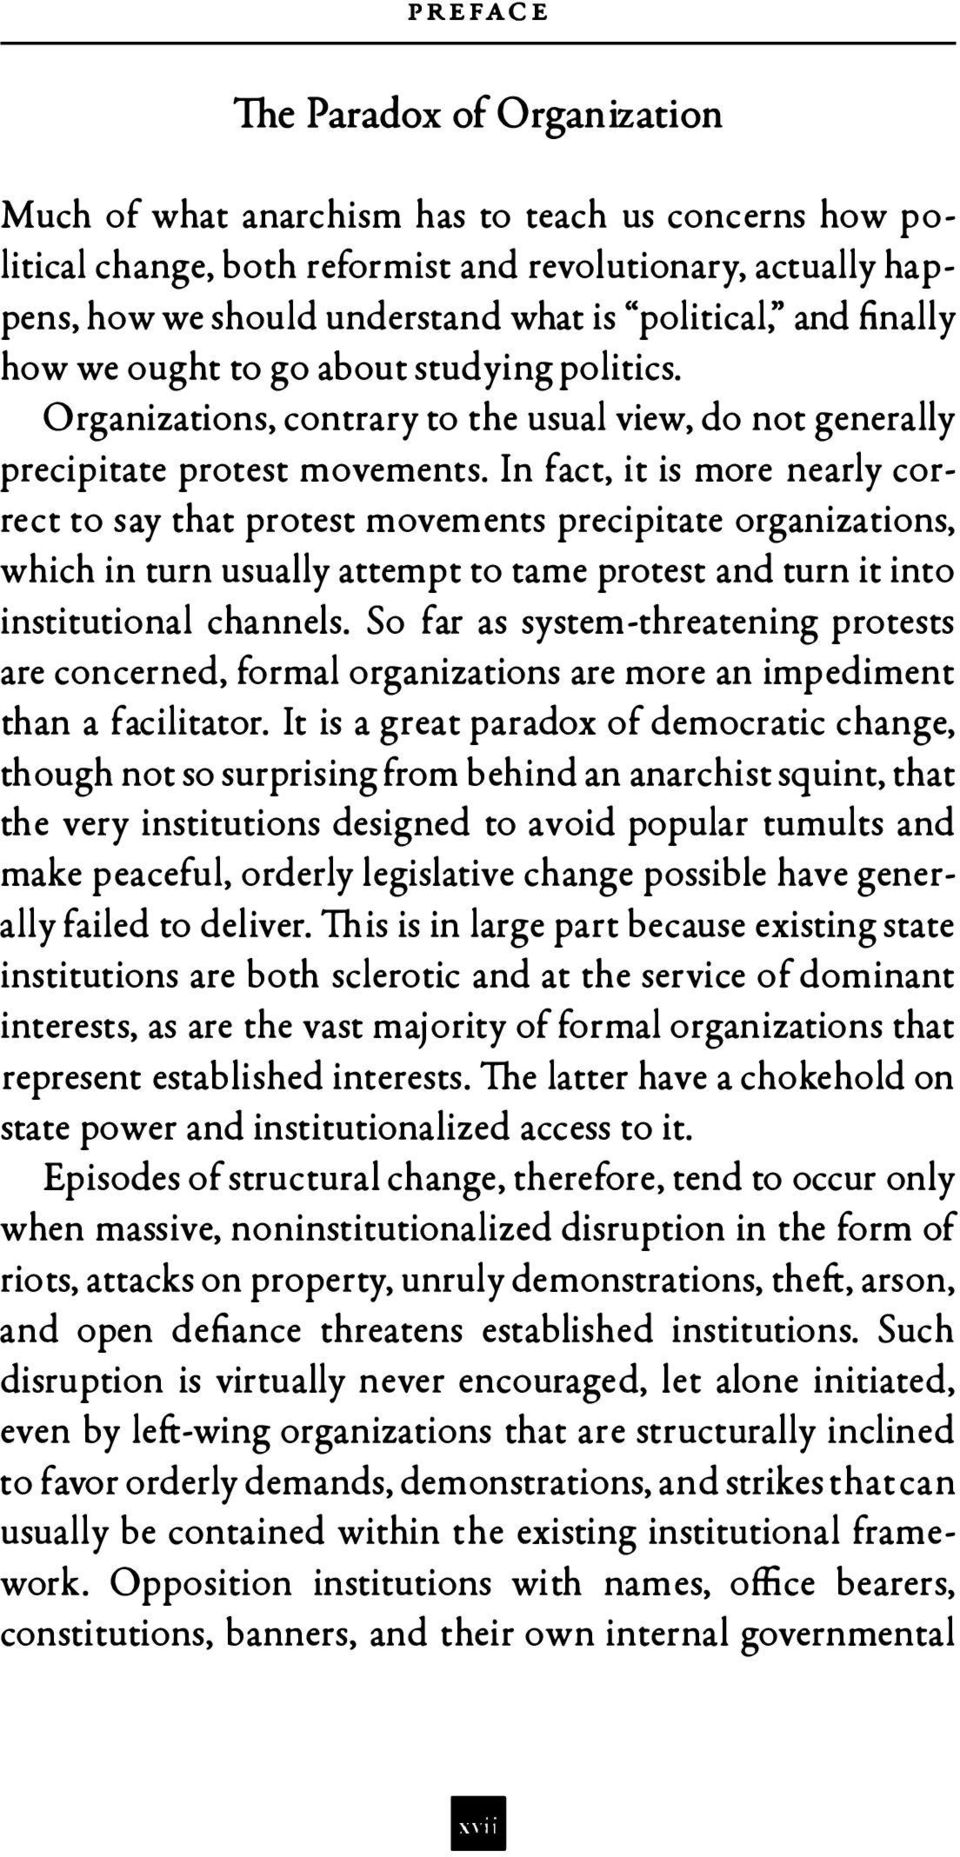 In fact, it is more nearly correct to say that protest movements precipitate organizations, which in turn usually attempt to tame protest and turn it into institutional channels.